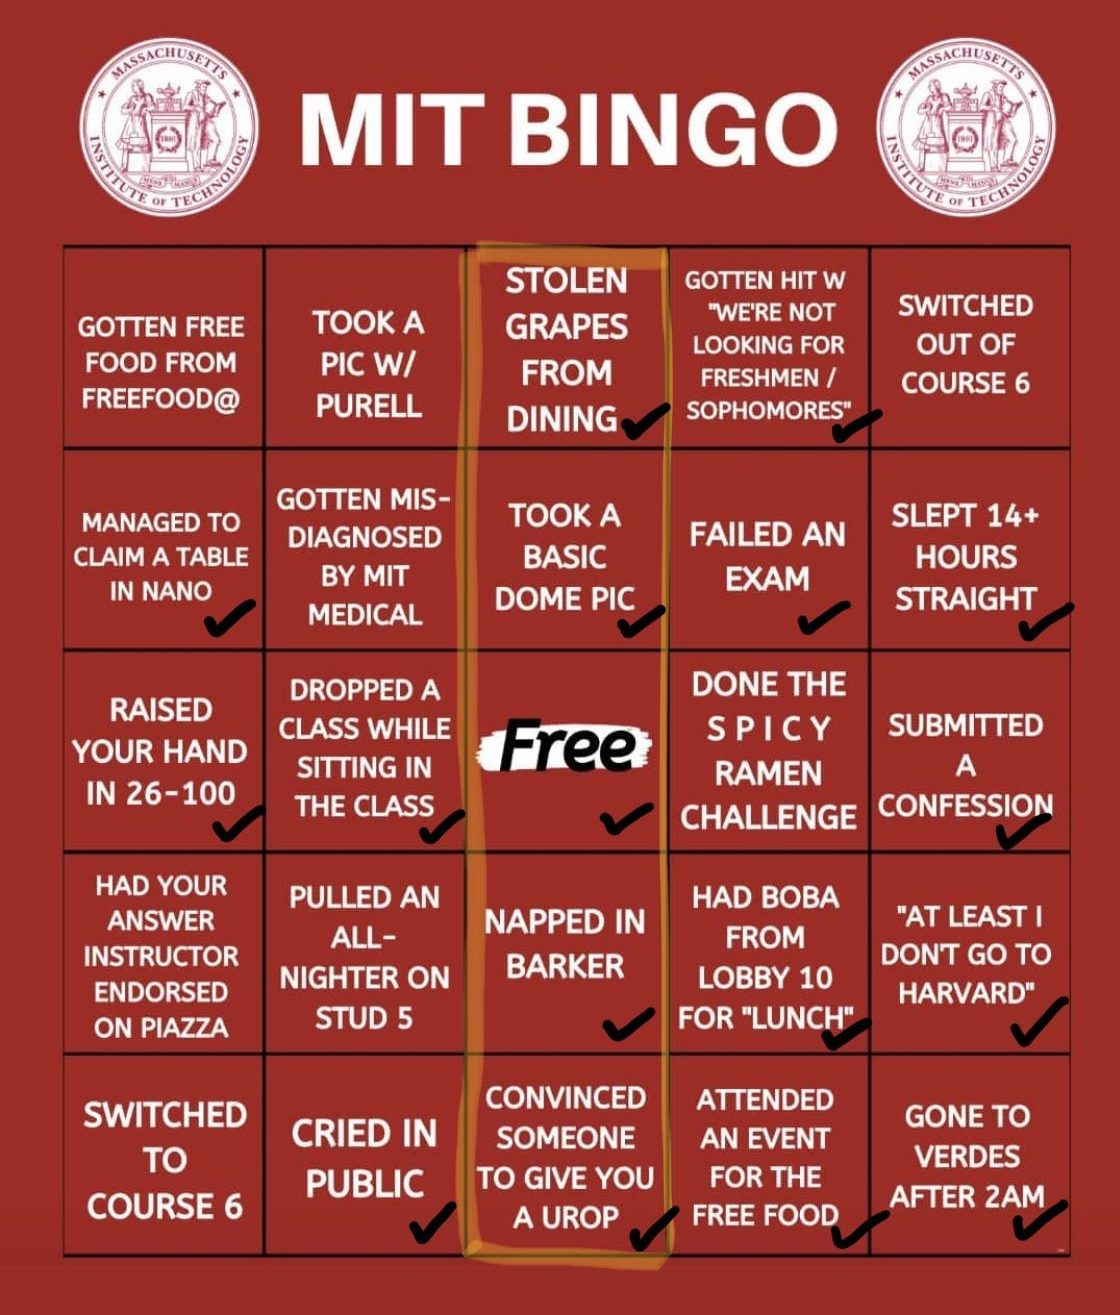 "Kidist's red bingo. She got a bingo on: ""stolen grapes from dining"", ""took a basic dome pic"", ""free space"", ""napped in barker"", and ""convinced someone to give you a urop""."